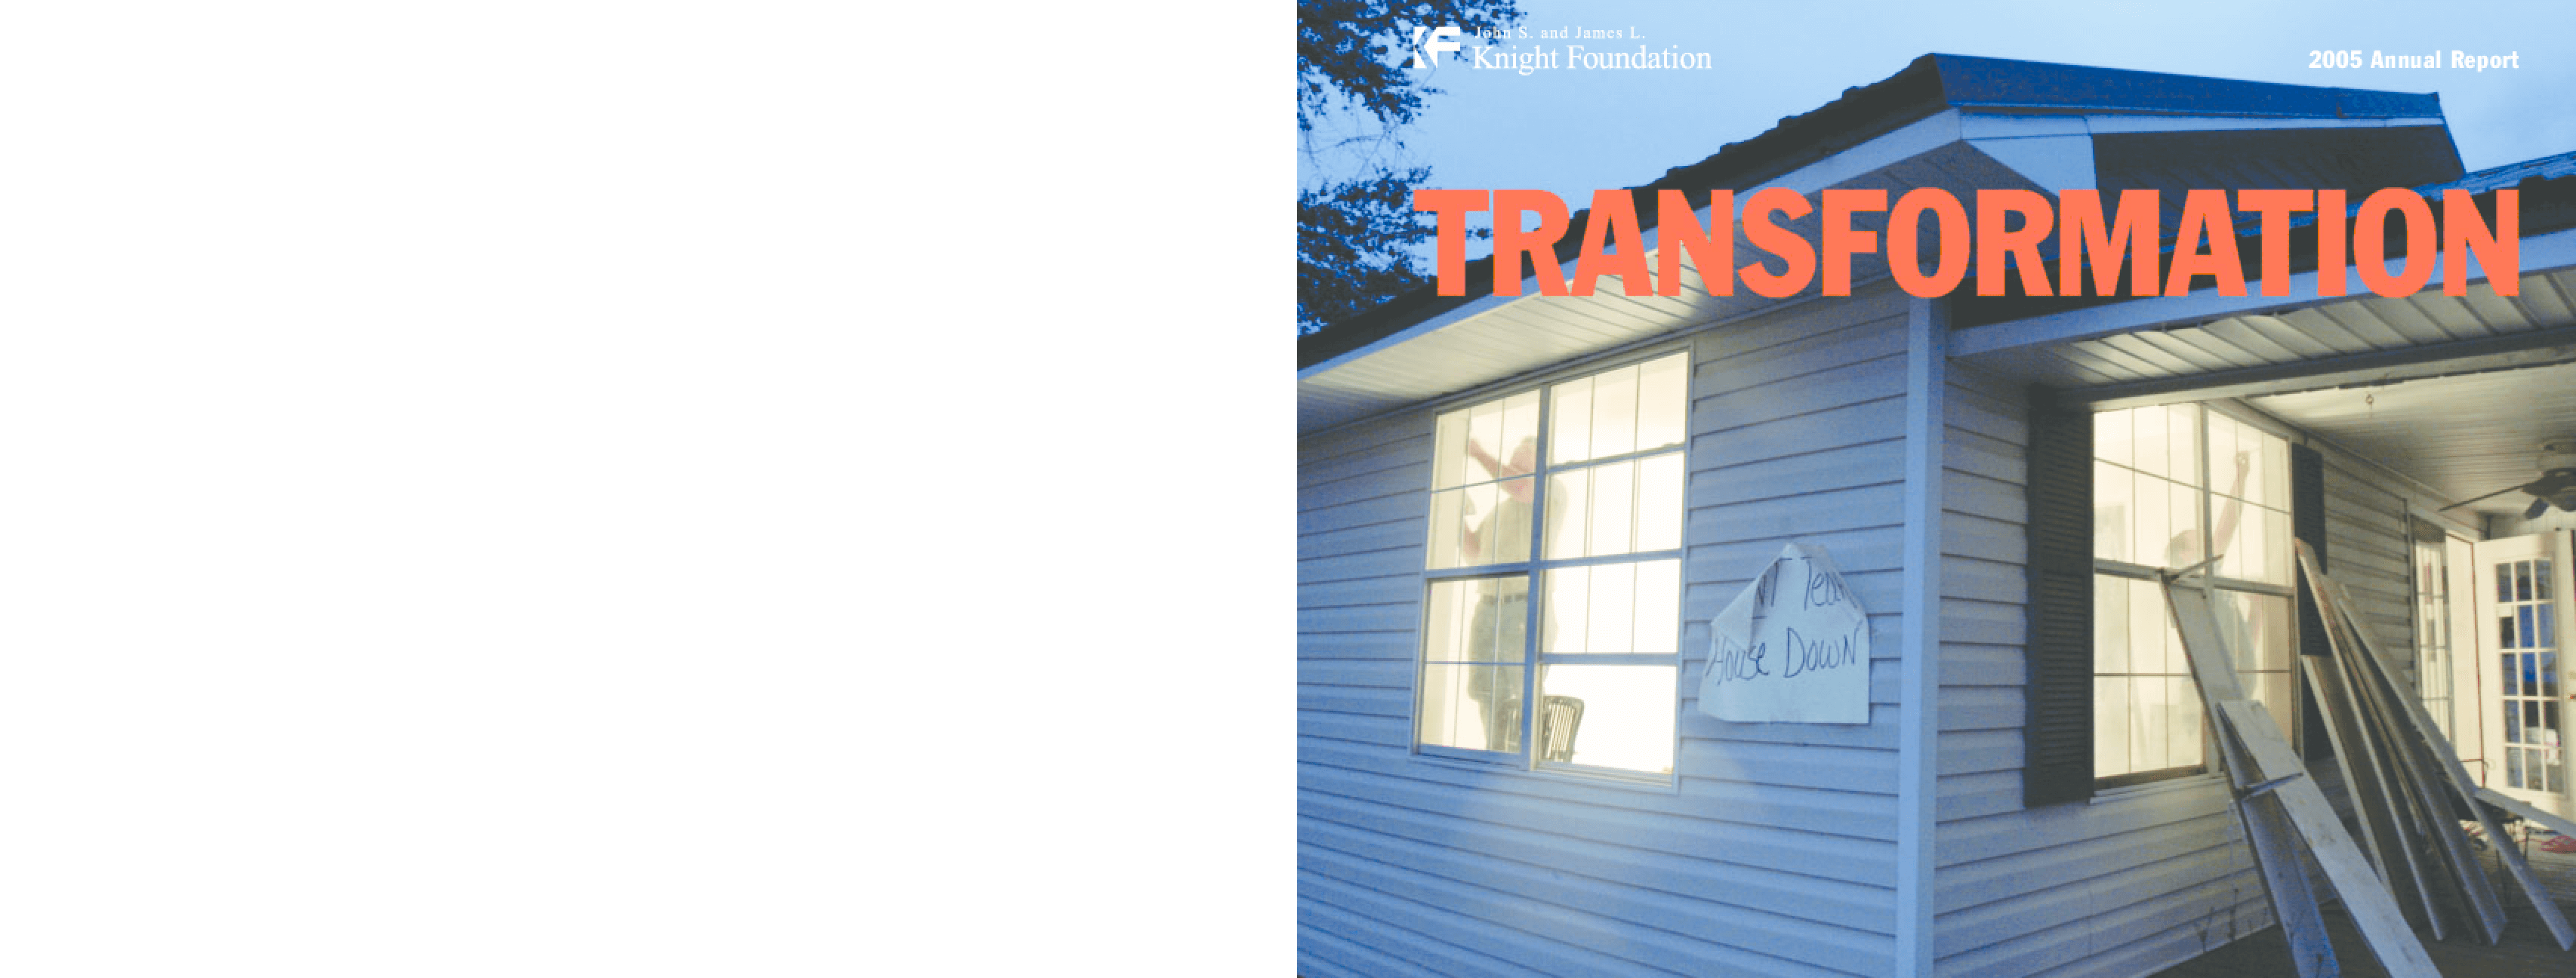 John S. and James L. Knight Foundation - 2005 Annual Report: Transformation